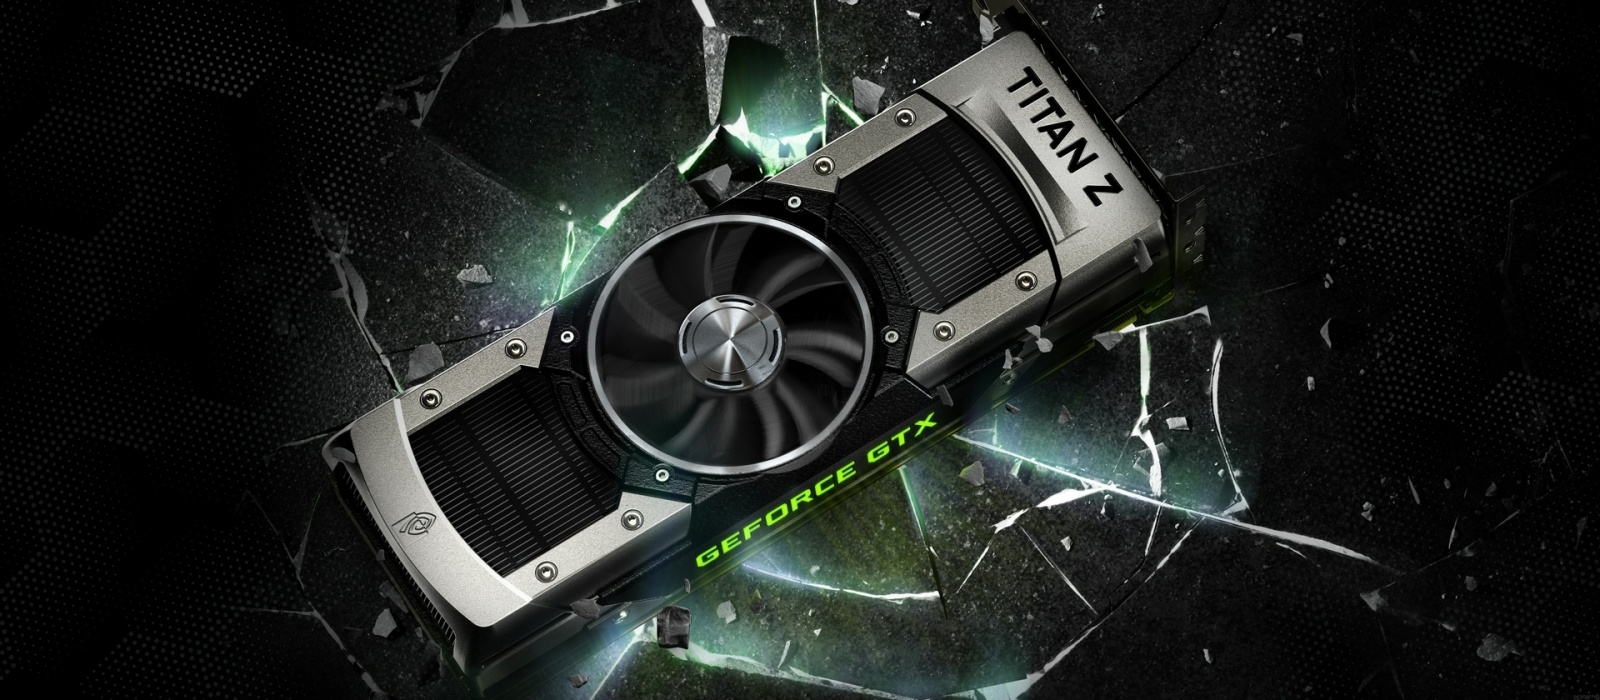 Loading a video card in games: how to check why it is not loaded at 100%, what is disclosure